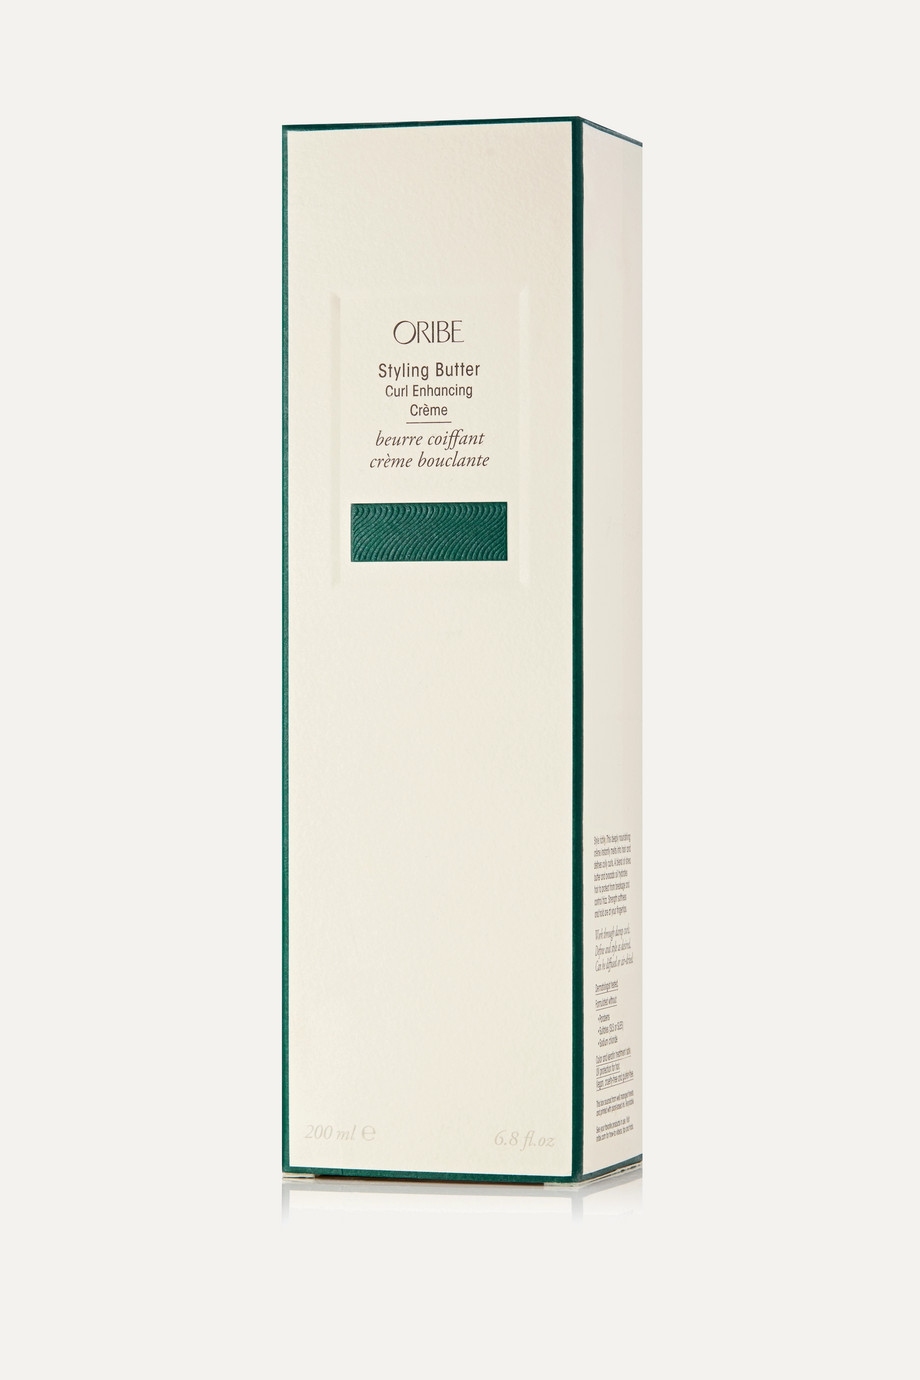 ORIBE Styling Butter Curl Enhancing Crème, 200ml